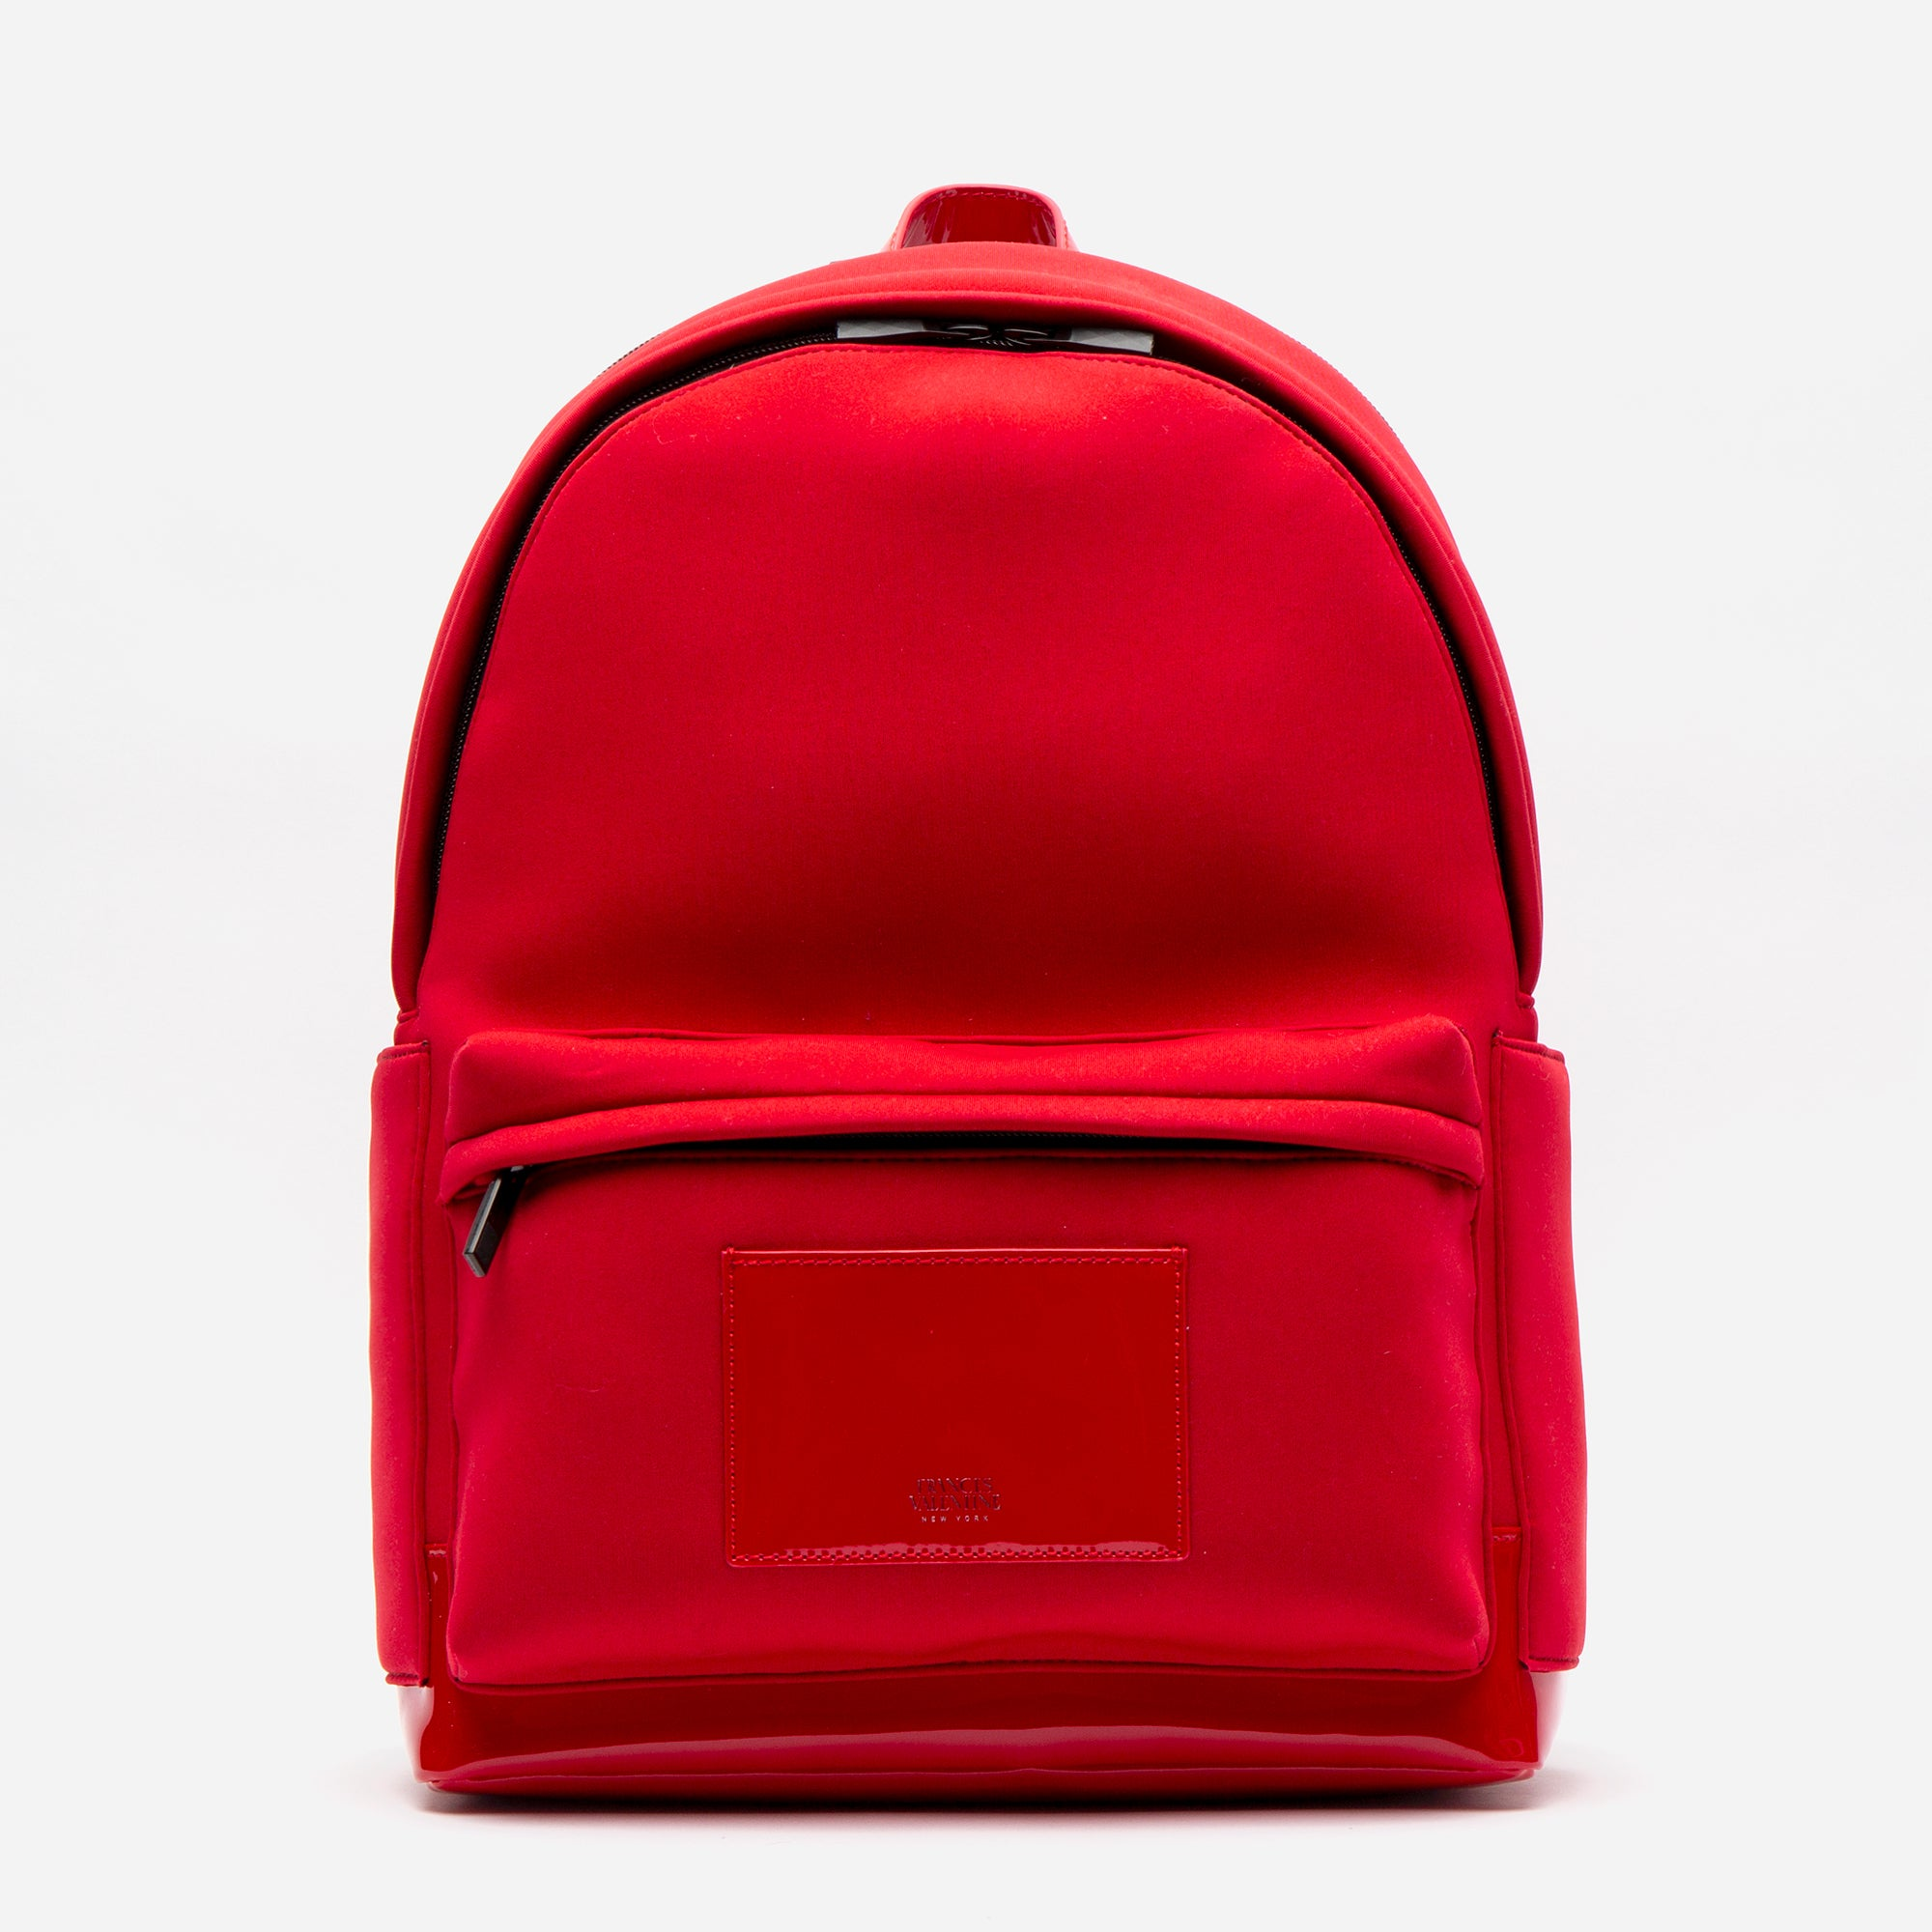 Neoprene Backpack Red